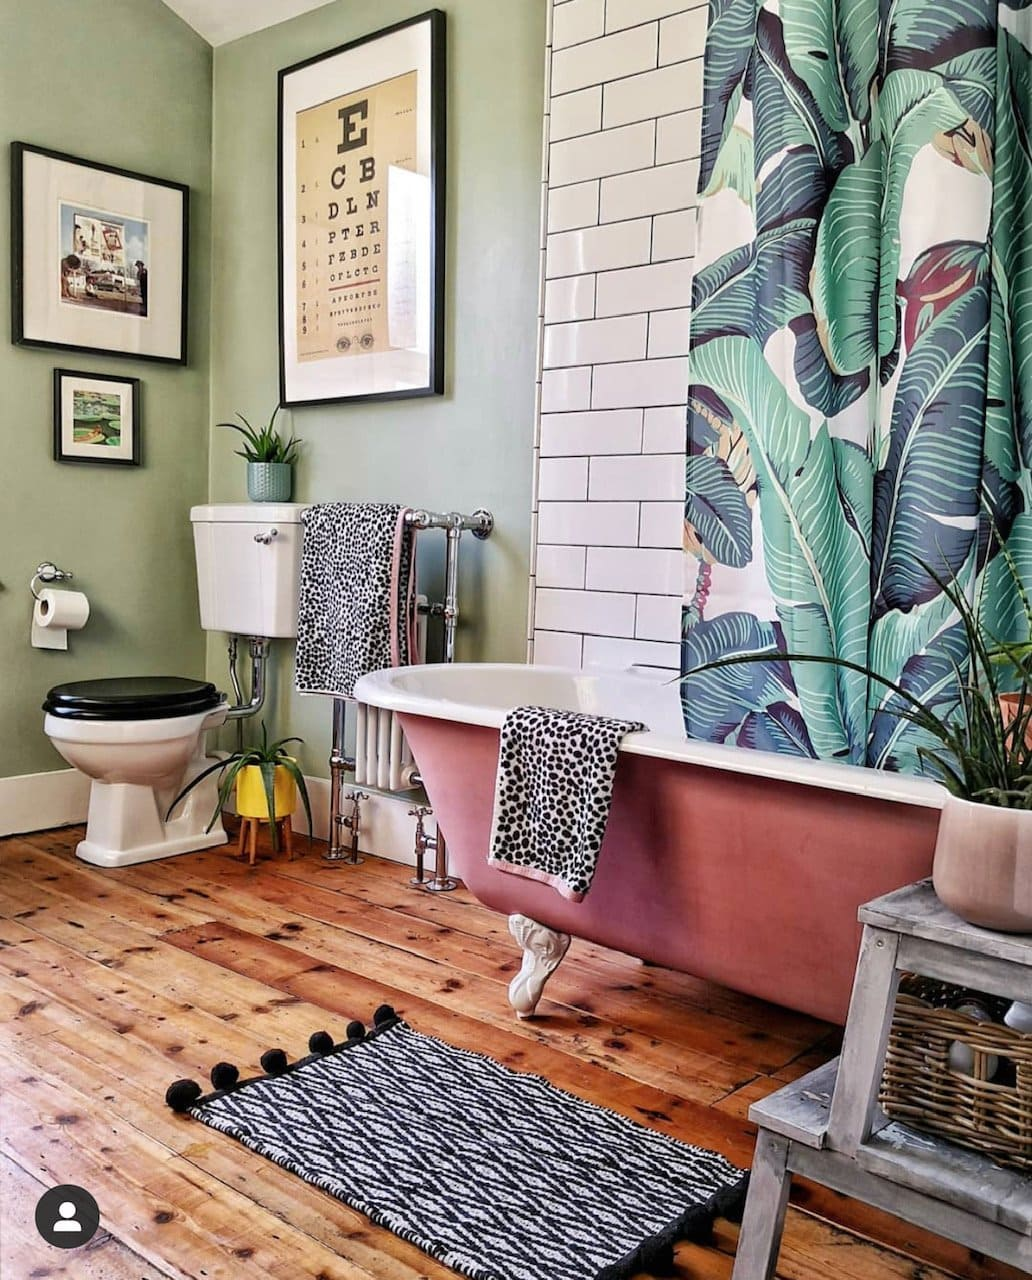 pink bath, botanical print, green walls, wooden floorboard